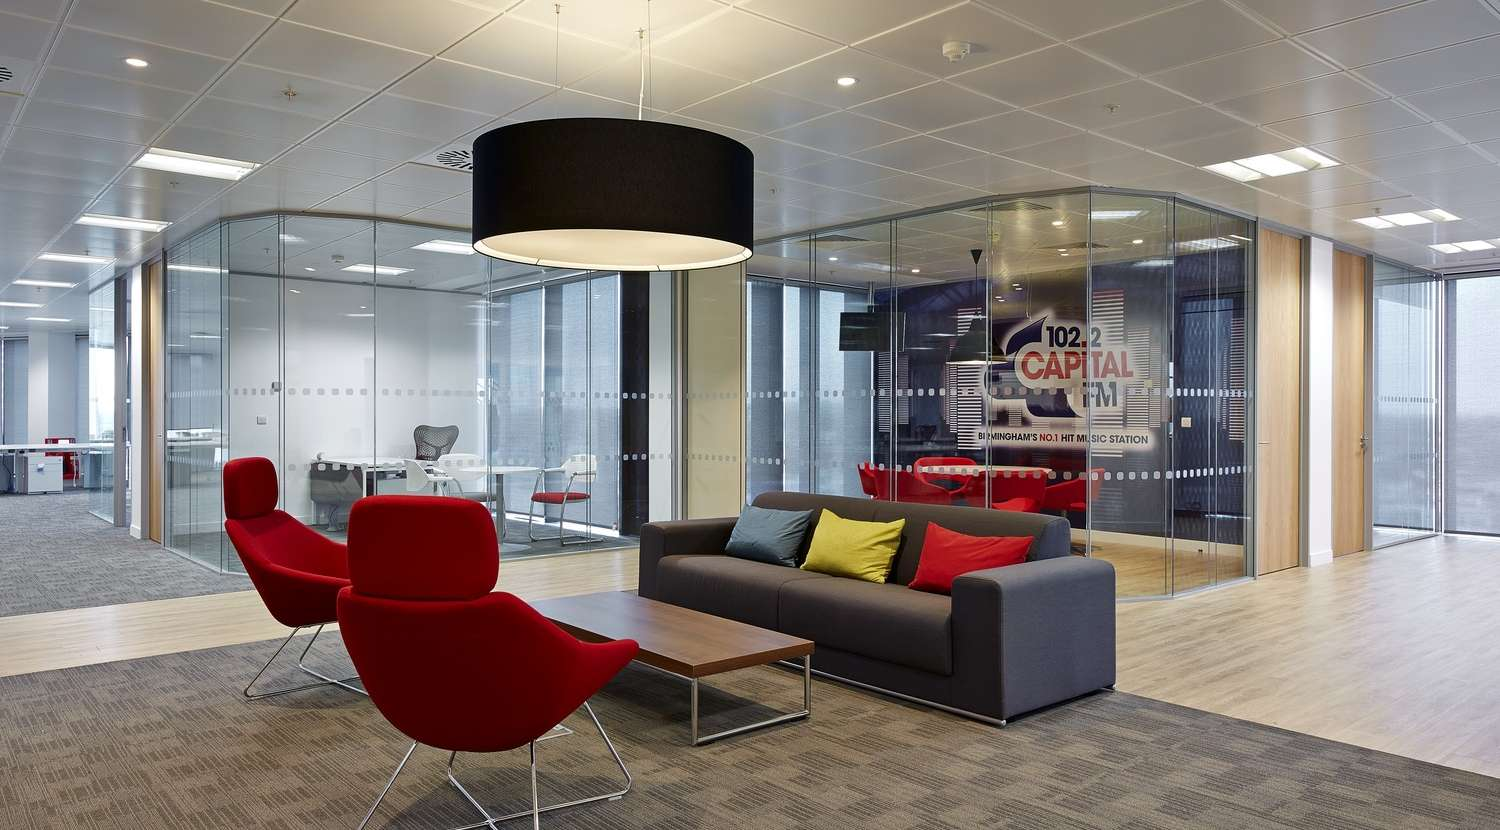 Sofa with bright cushions in casual meeting area